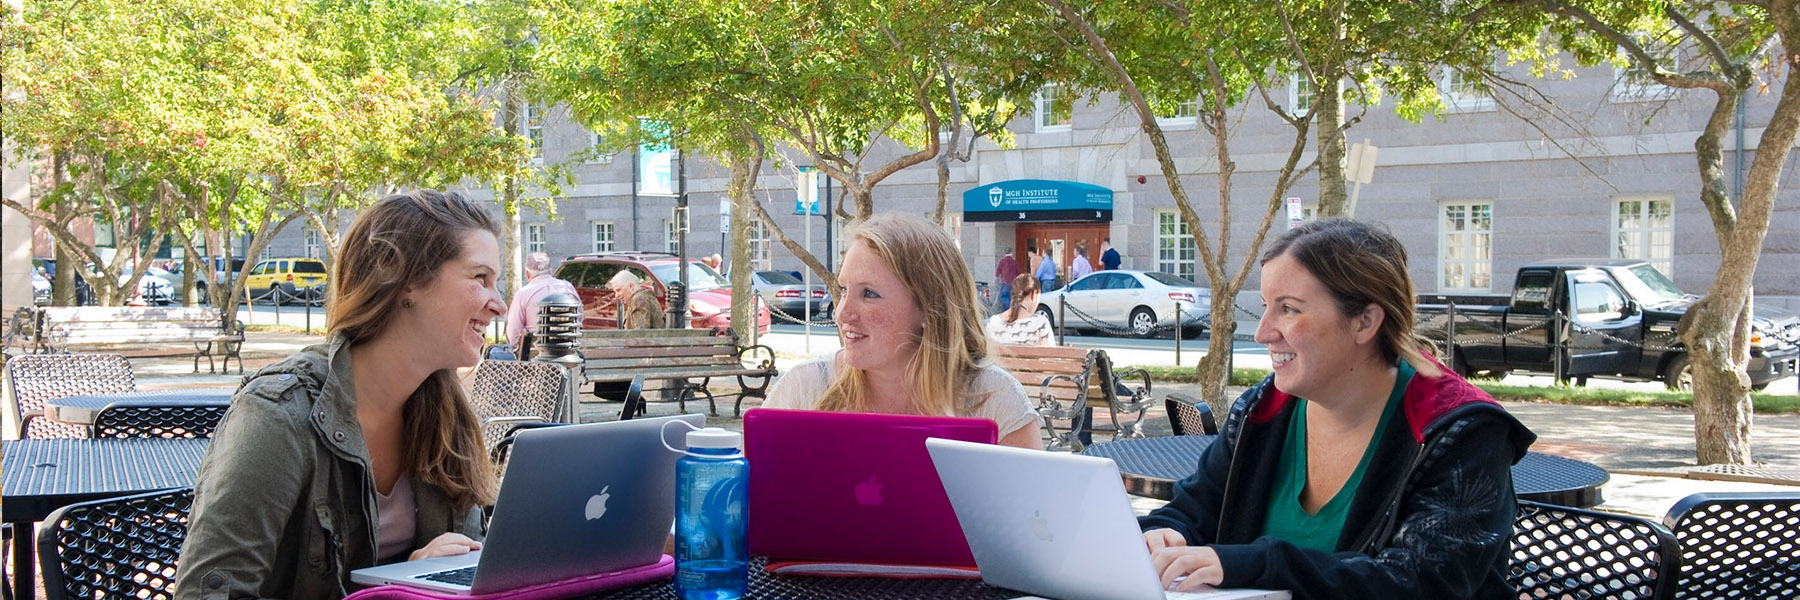 Group of female students studying outside